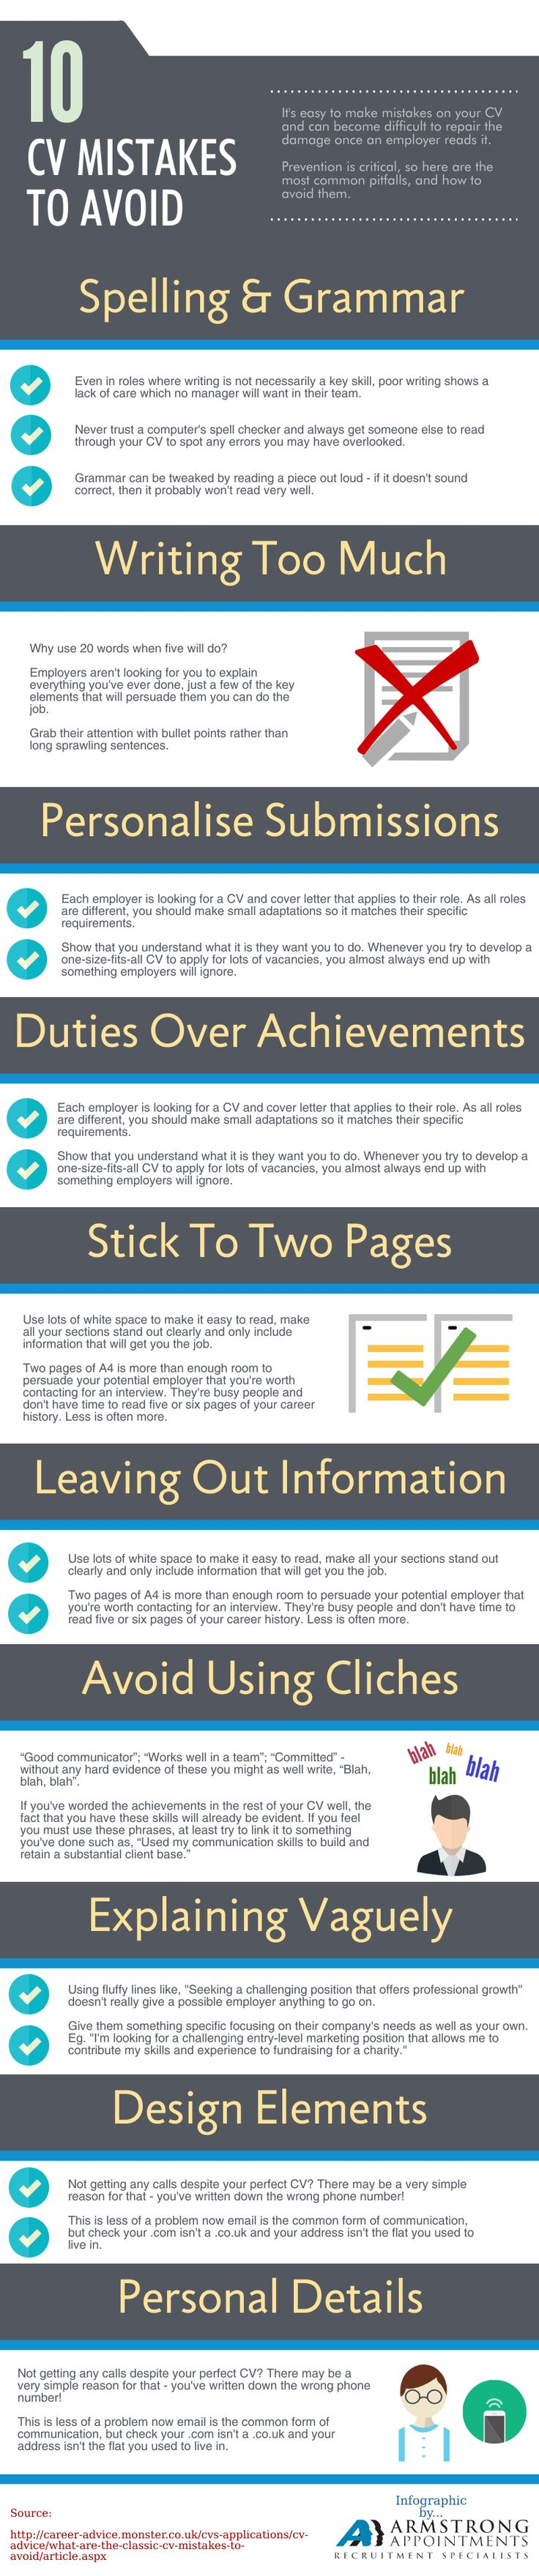 What Are The 10 Common CV Mistakes You Must Avoid? [INFOGRAPHIC]